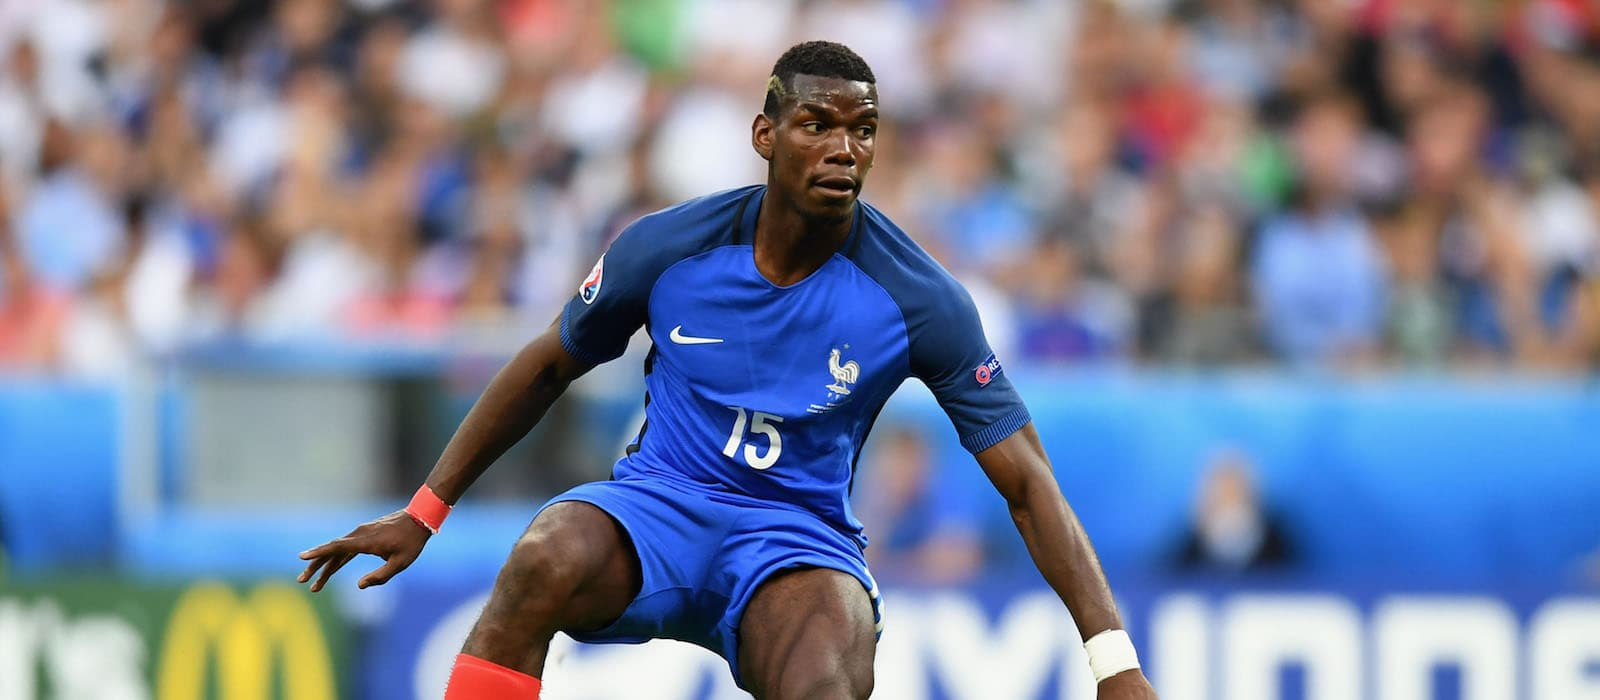 Paul Pogba puts in muted performance in France's Euro 2016 final with Portugal